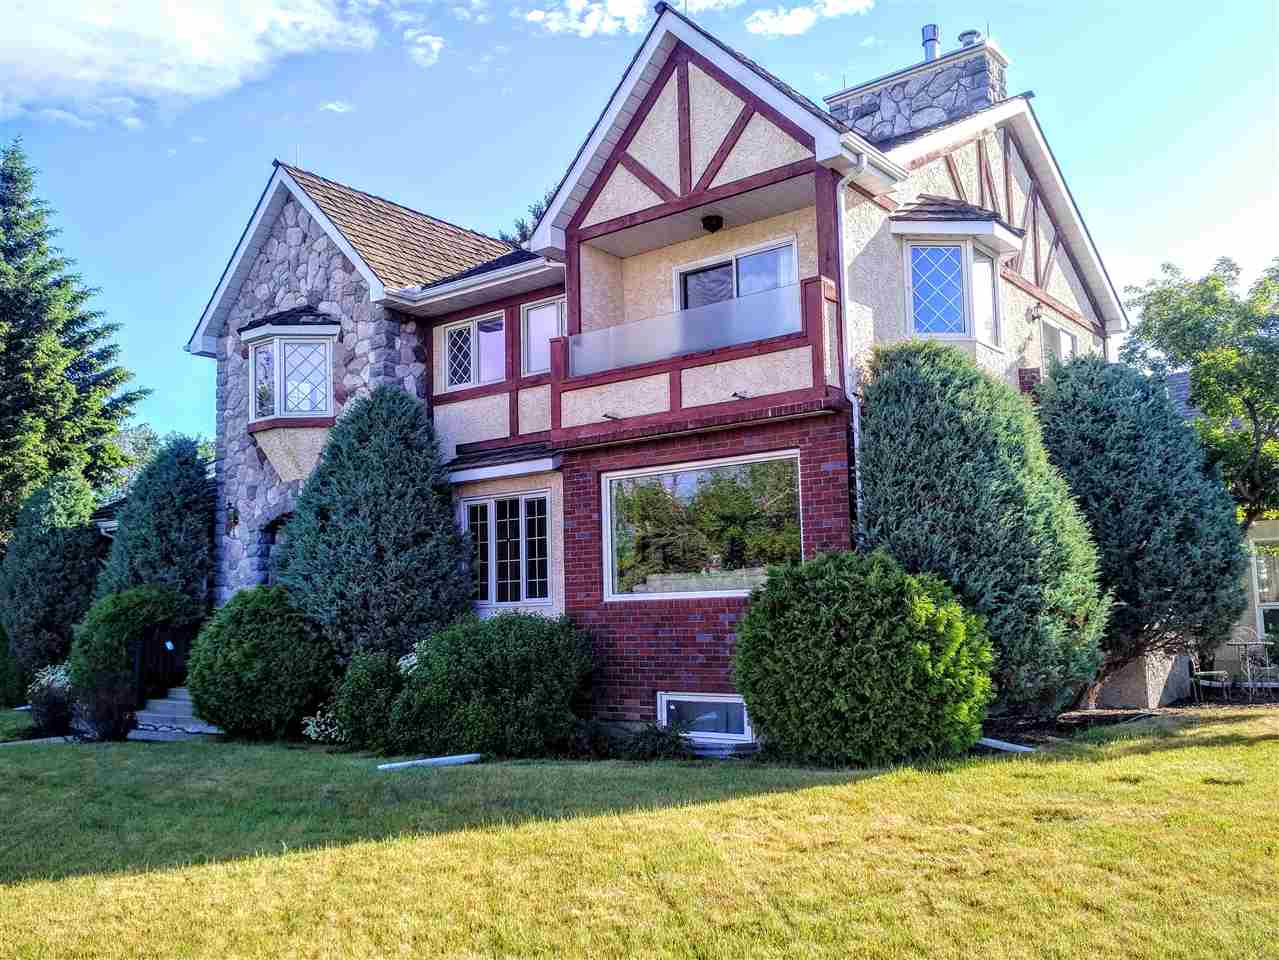 Undoubtedly one of Edmonton?s finest examples of Tudor-Revival architecture, this 2,981 sq ft masterpiece is among the rarefied lots that sit at the edge of the river valley while offering a full, breathtaking view of Edmonton?s skyline. One visit and you will see why Ada Boulevard is one of Edmonton?s premiere addresses. This 6 bdrm 2-storey actually sits on TWO lots, offering unmatched estate-style living near the downtown core. The main floor boasts 2 living rooms, a bedroom, formal dining room and a gourmet kitchen (featuring gas stove with brick surround, granite countertops, stainless steel appliances, dining nook and large island). Upstairs are 2 bedrooms and a palatial master that must be seen in person, with 2 walk-in closets, an ensuite (with separate tub/shower), a 3-sided fireplace, and 2 balconies offering spectacular views. The fully-finished basement features 2 additional bedrooms, a rec room and plenty of storage. An attached double garage and beautiful landscaping only add to the luxury.